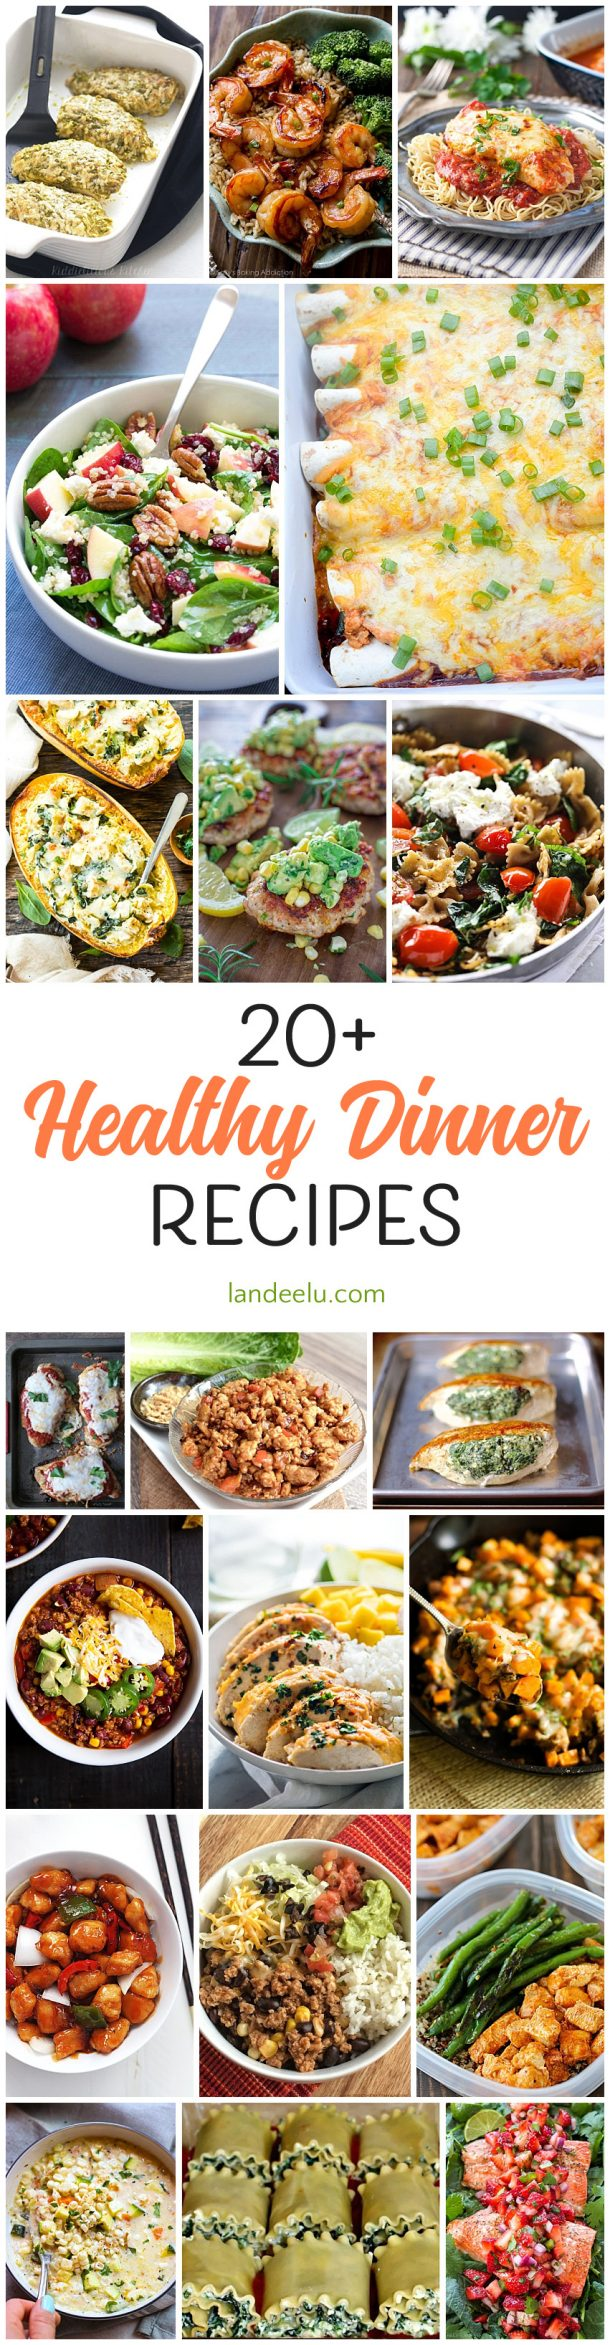 Over 20 Healthy Dinner Recipes To Try ASAP Some Family Favorites Lightened Up And